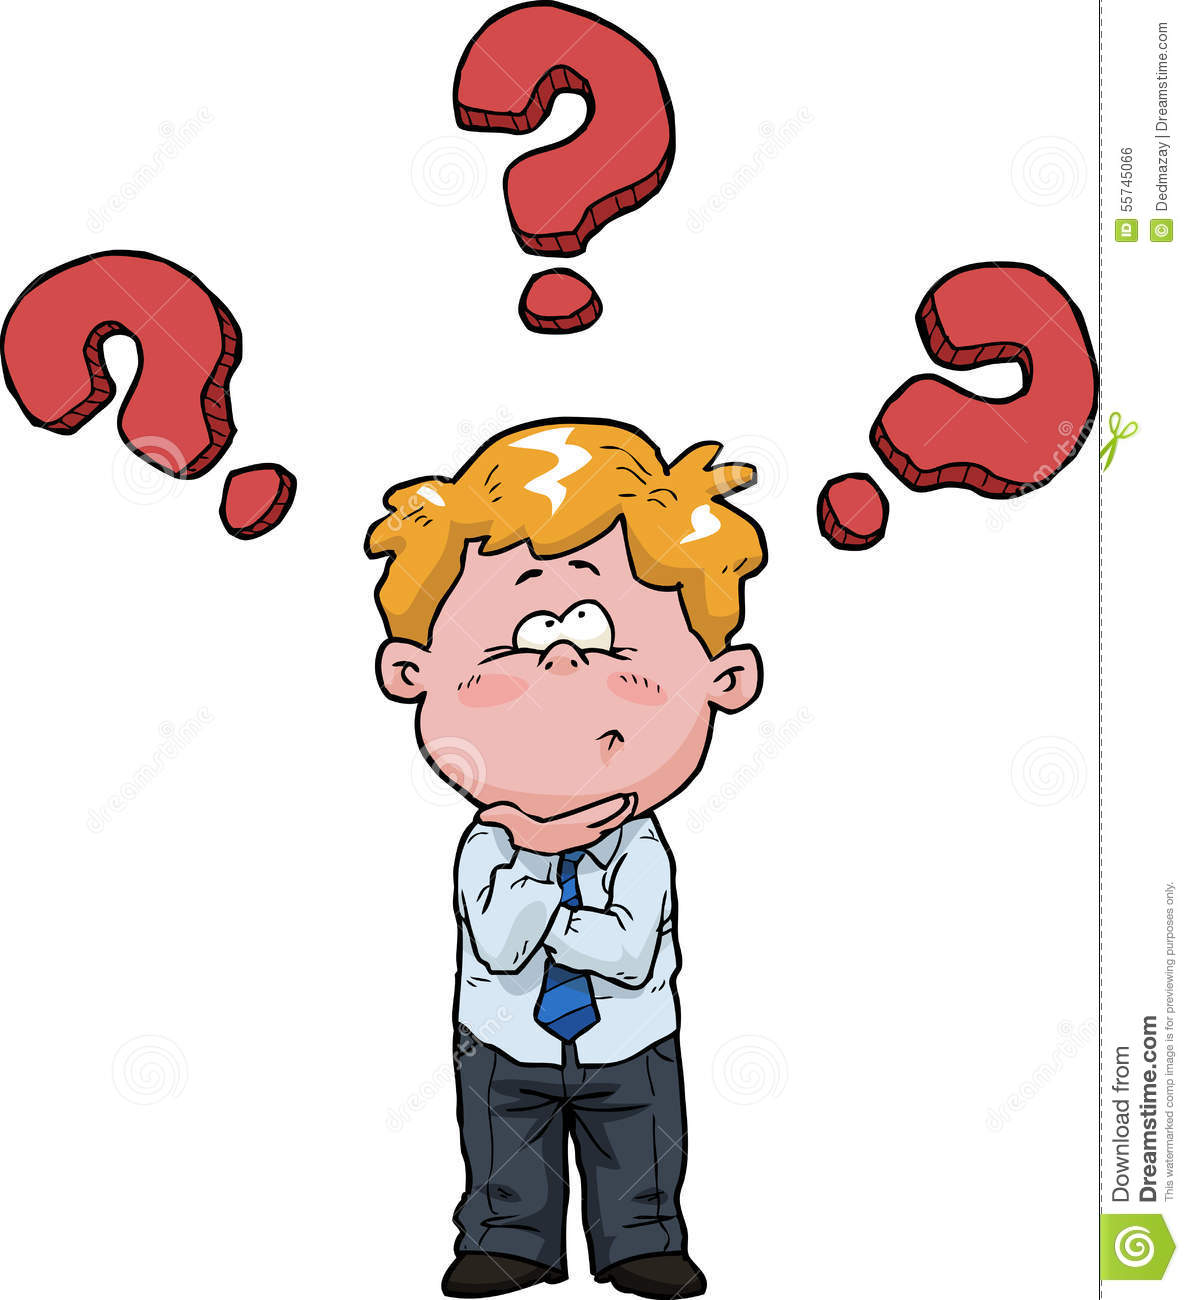 Boy Thinking Stock Vector - Image: 55745066